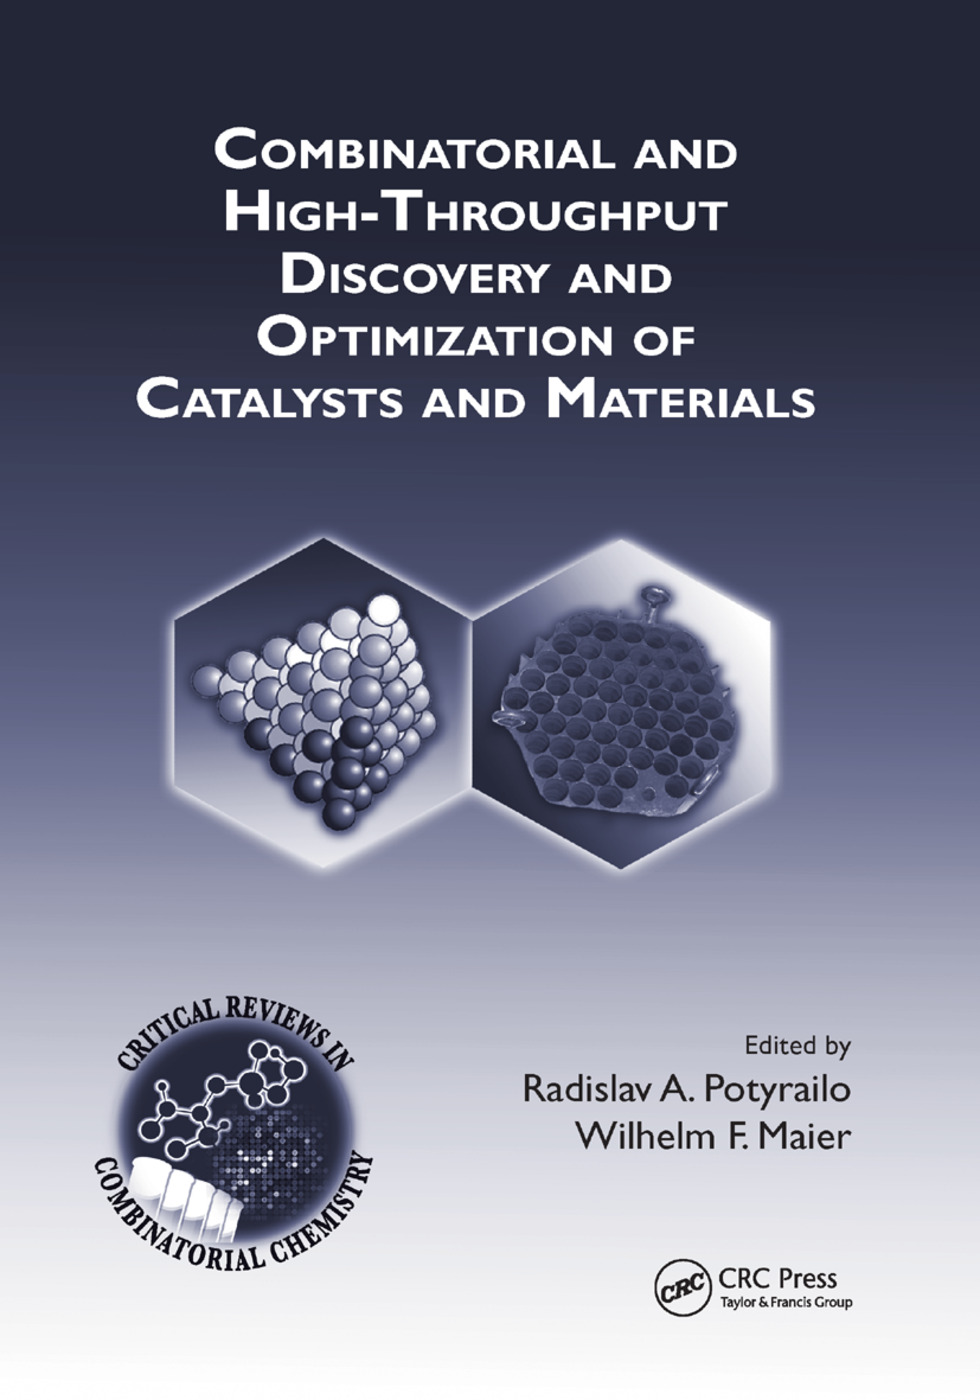 Combinatorial and High-Throughput Discovery and Optimization of Catalysts and Materials book cover